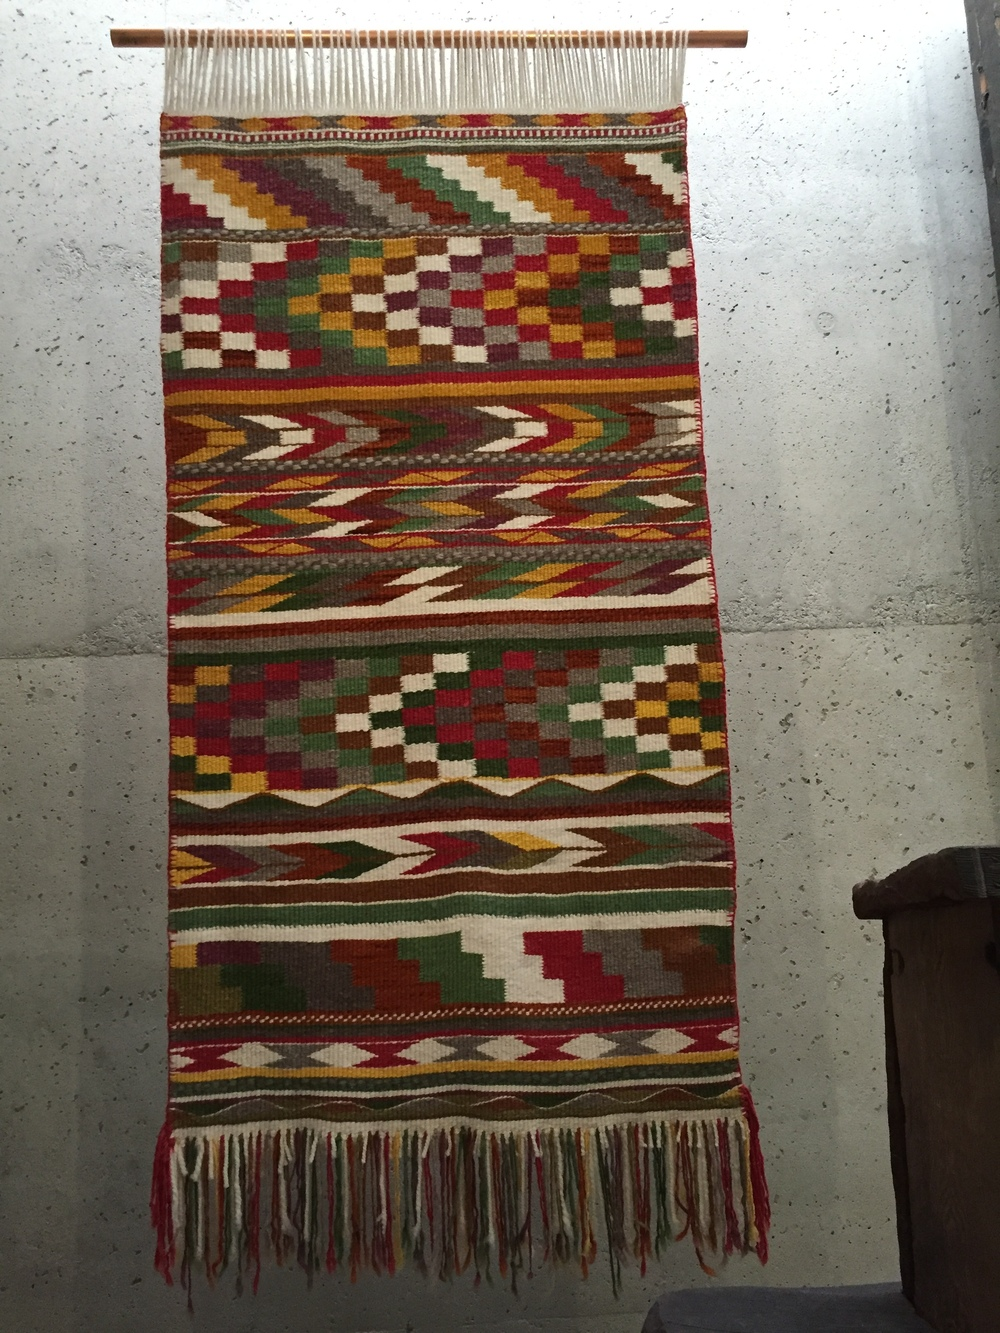 contemporary Musqueam weaving by Debra Sparrow & Robyn Sparrow